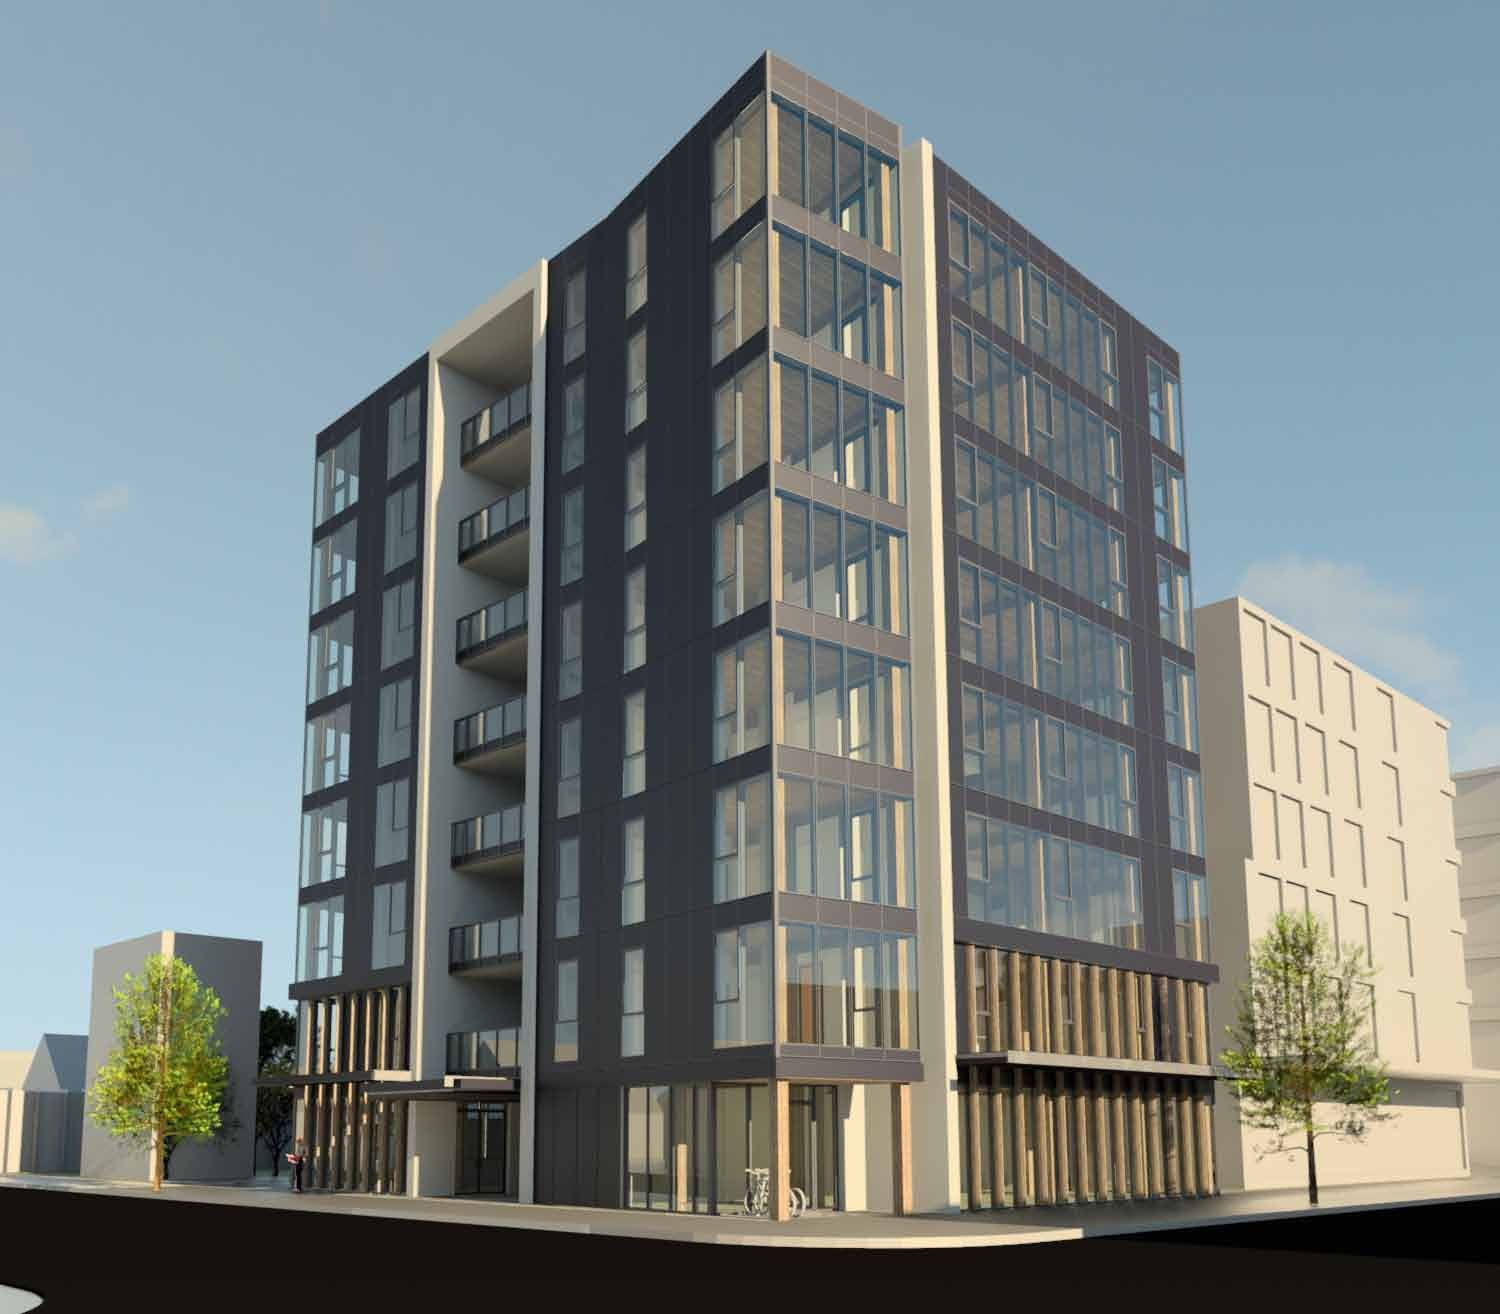 Building Design Software Freeware: Portland Constructs First All-Wood High-Rise Building